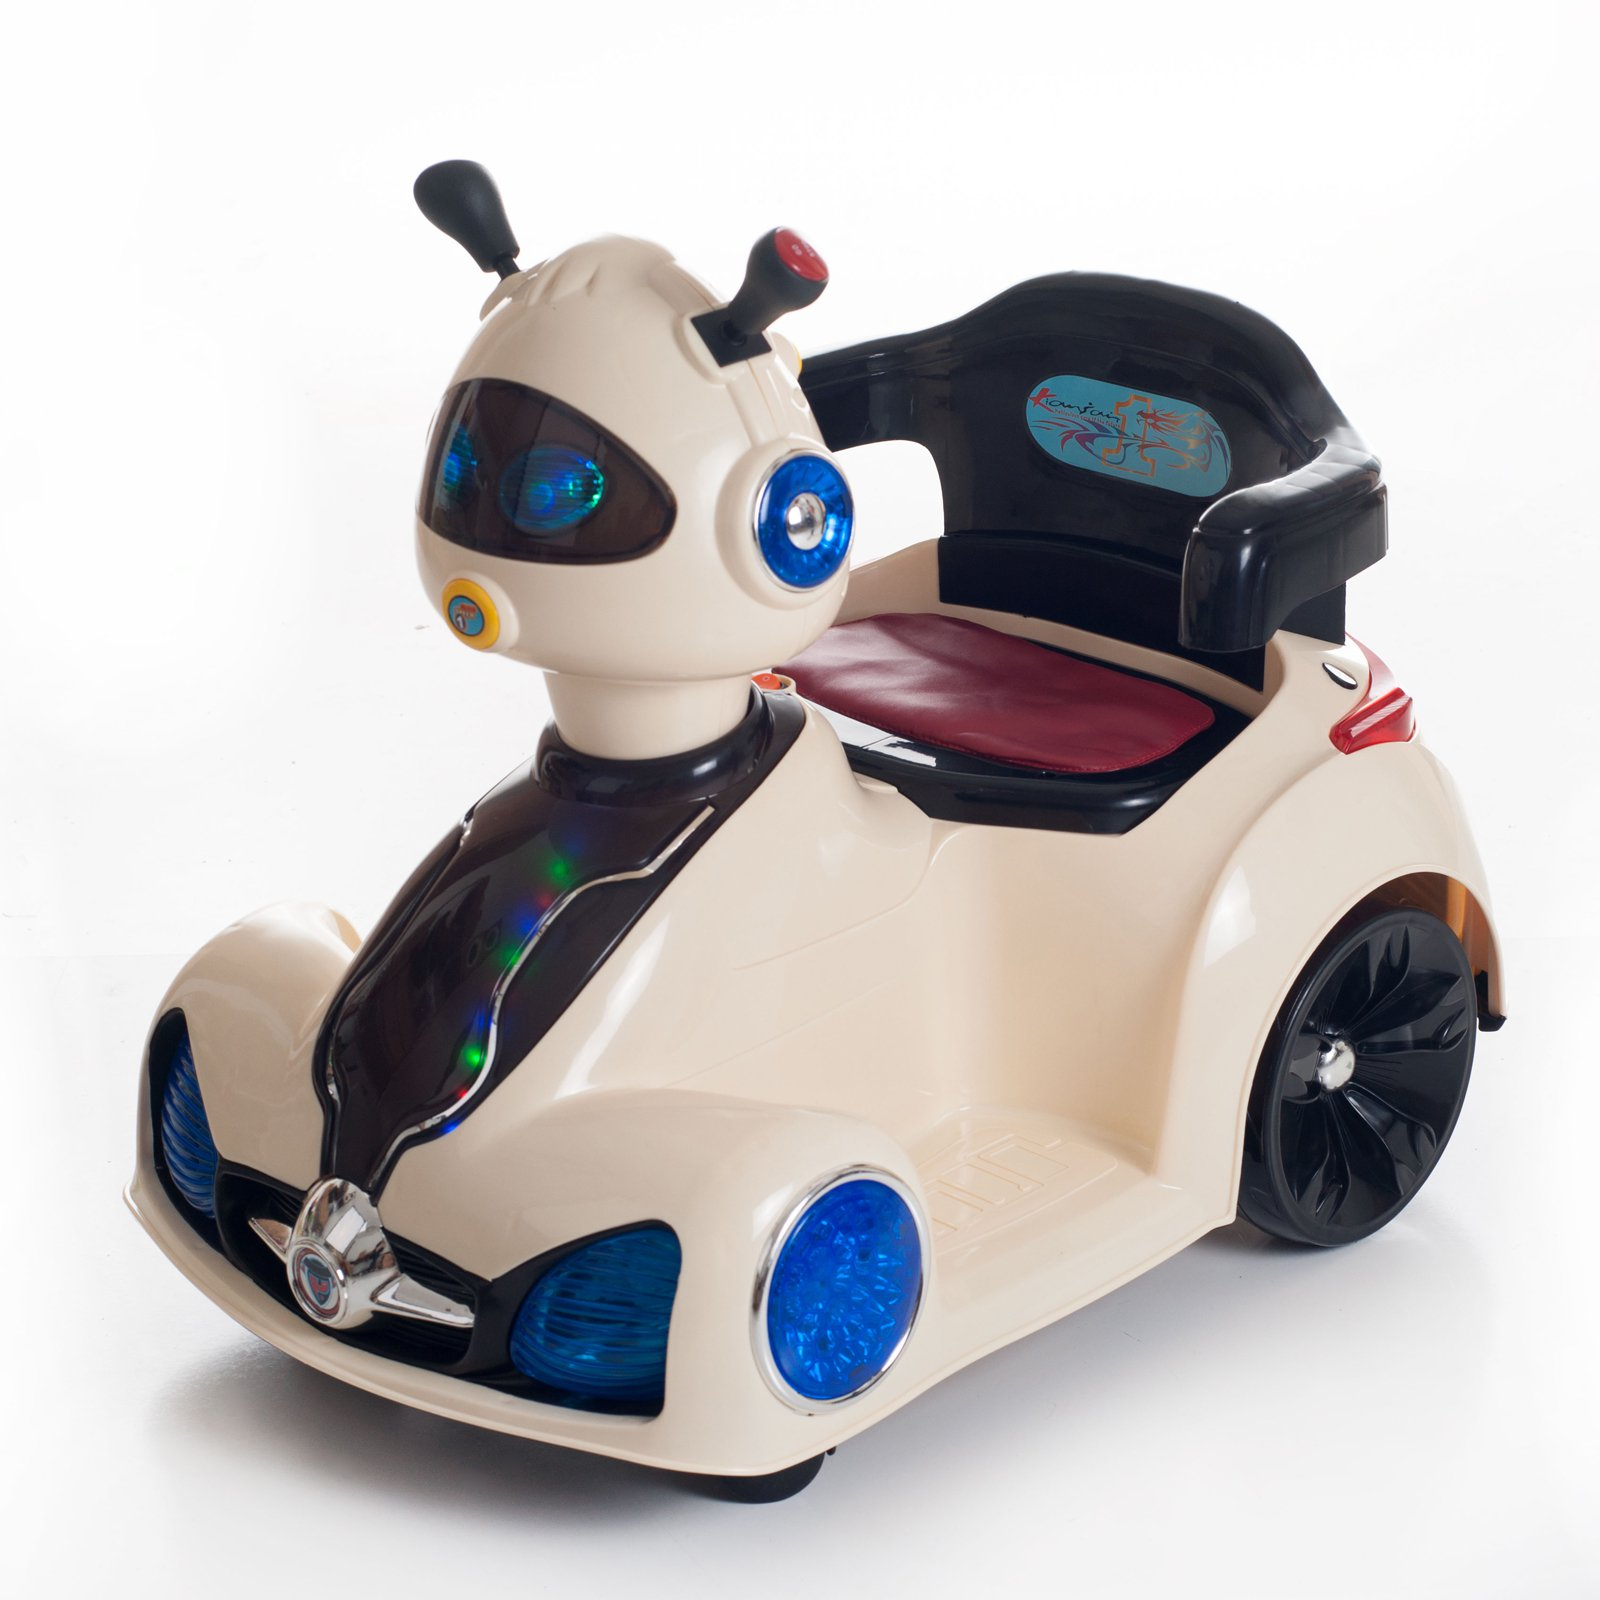 Ride on Toy, Remote Control Space Car for Kids by Lil' Rider Battery Powered, Toys for... by Trademark Global LLC